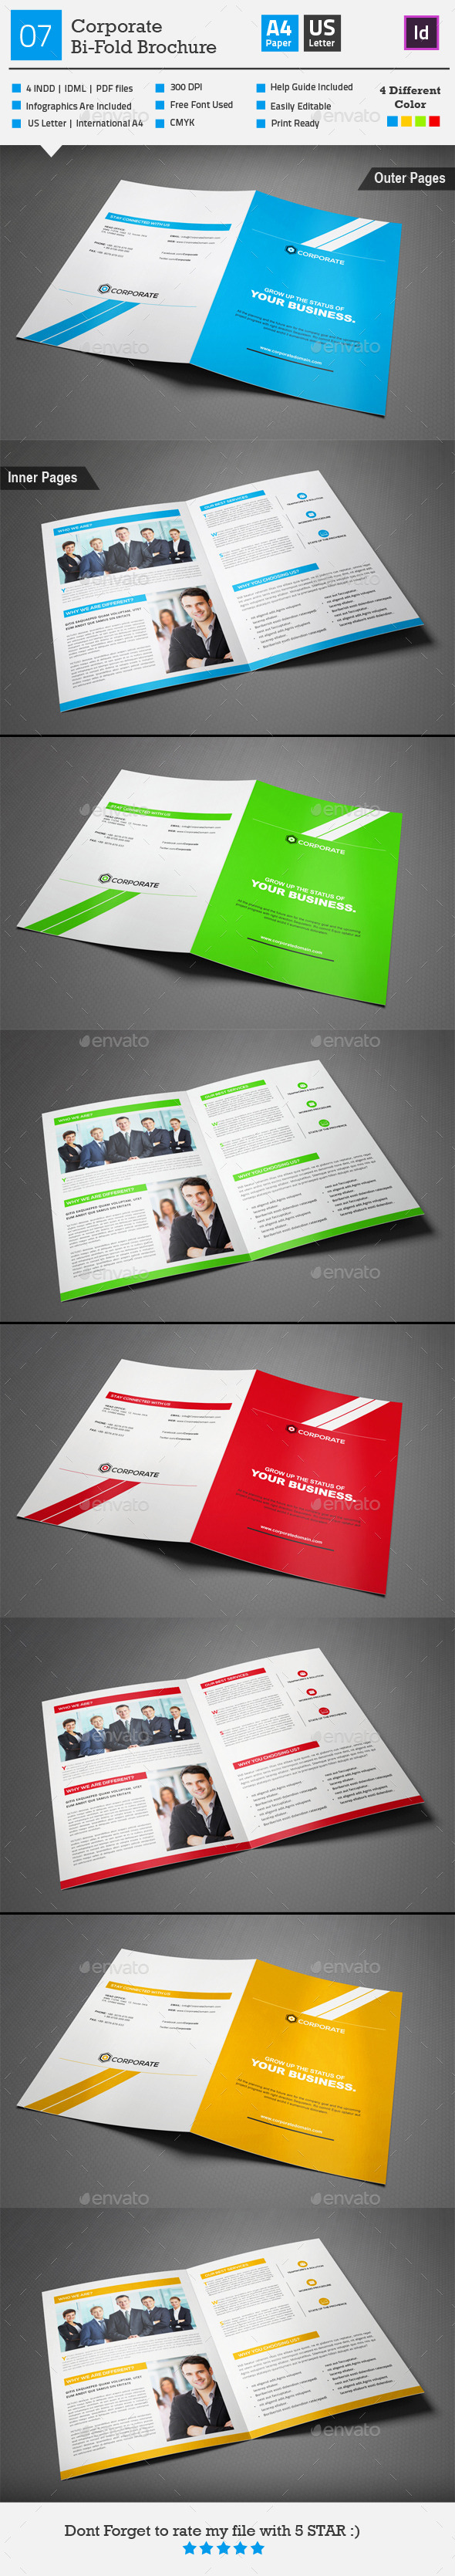 GraphicRiver Corporate Bi-fold Brochure 07 9719389